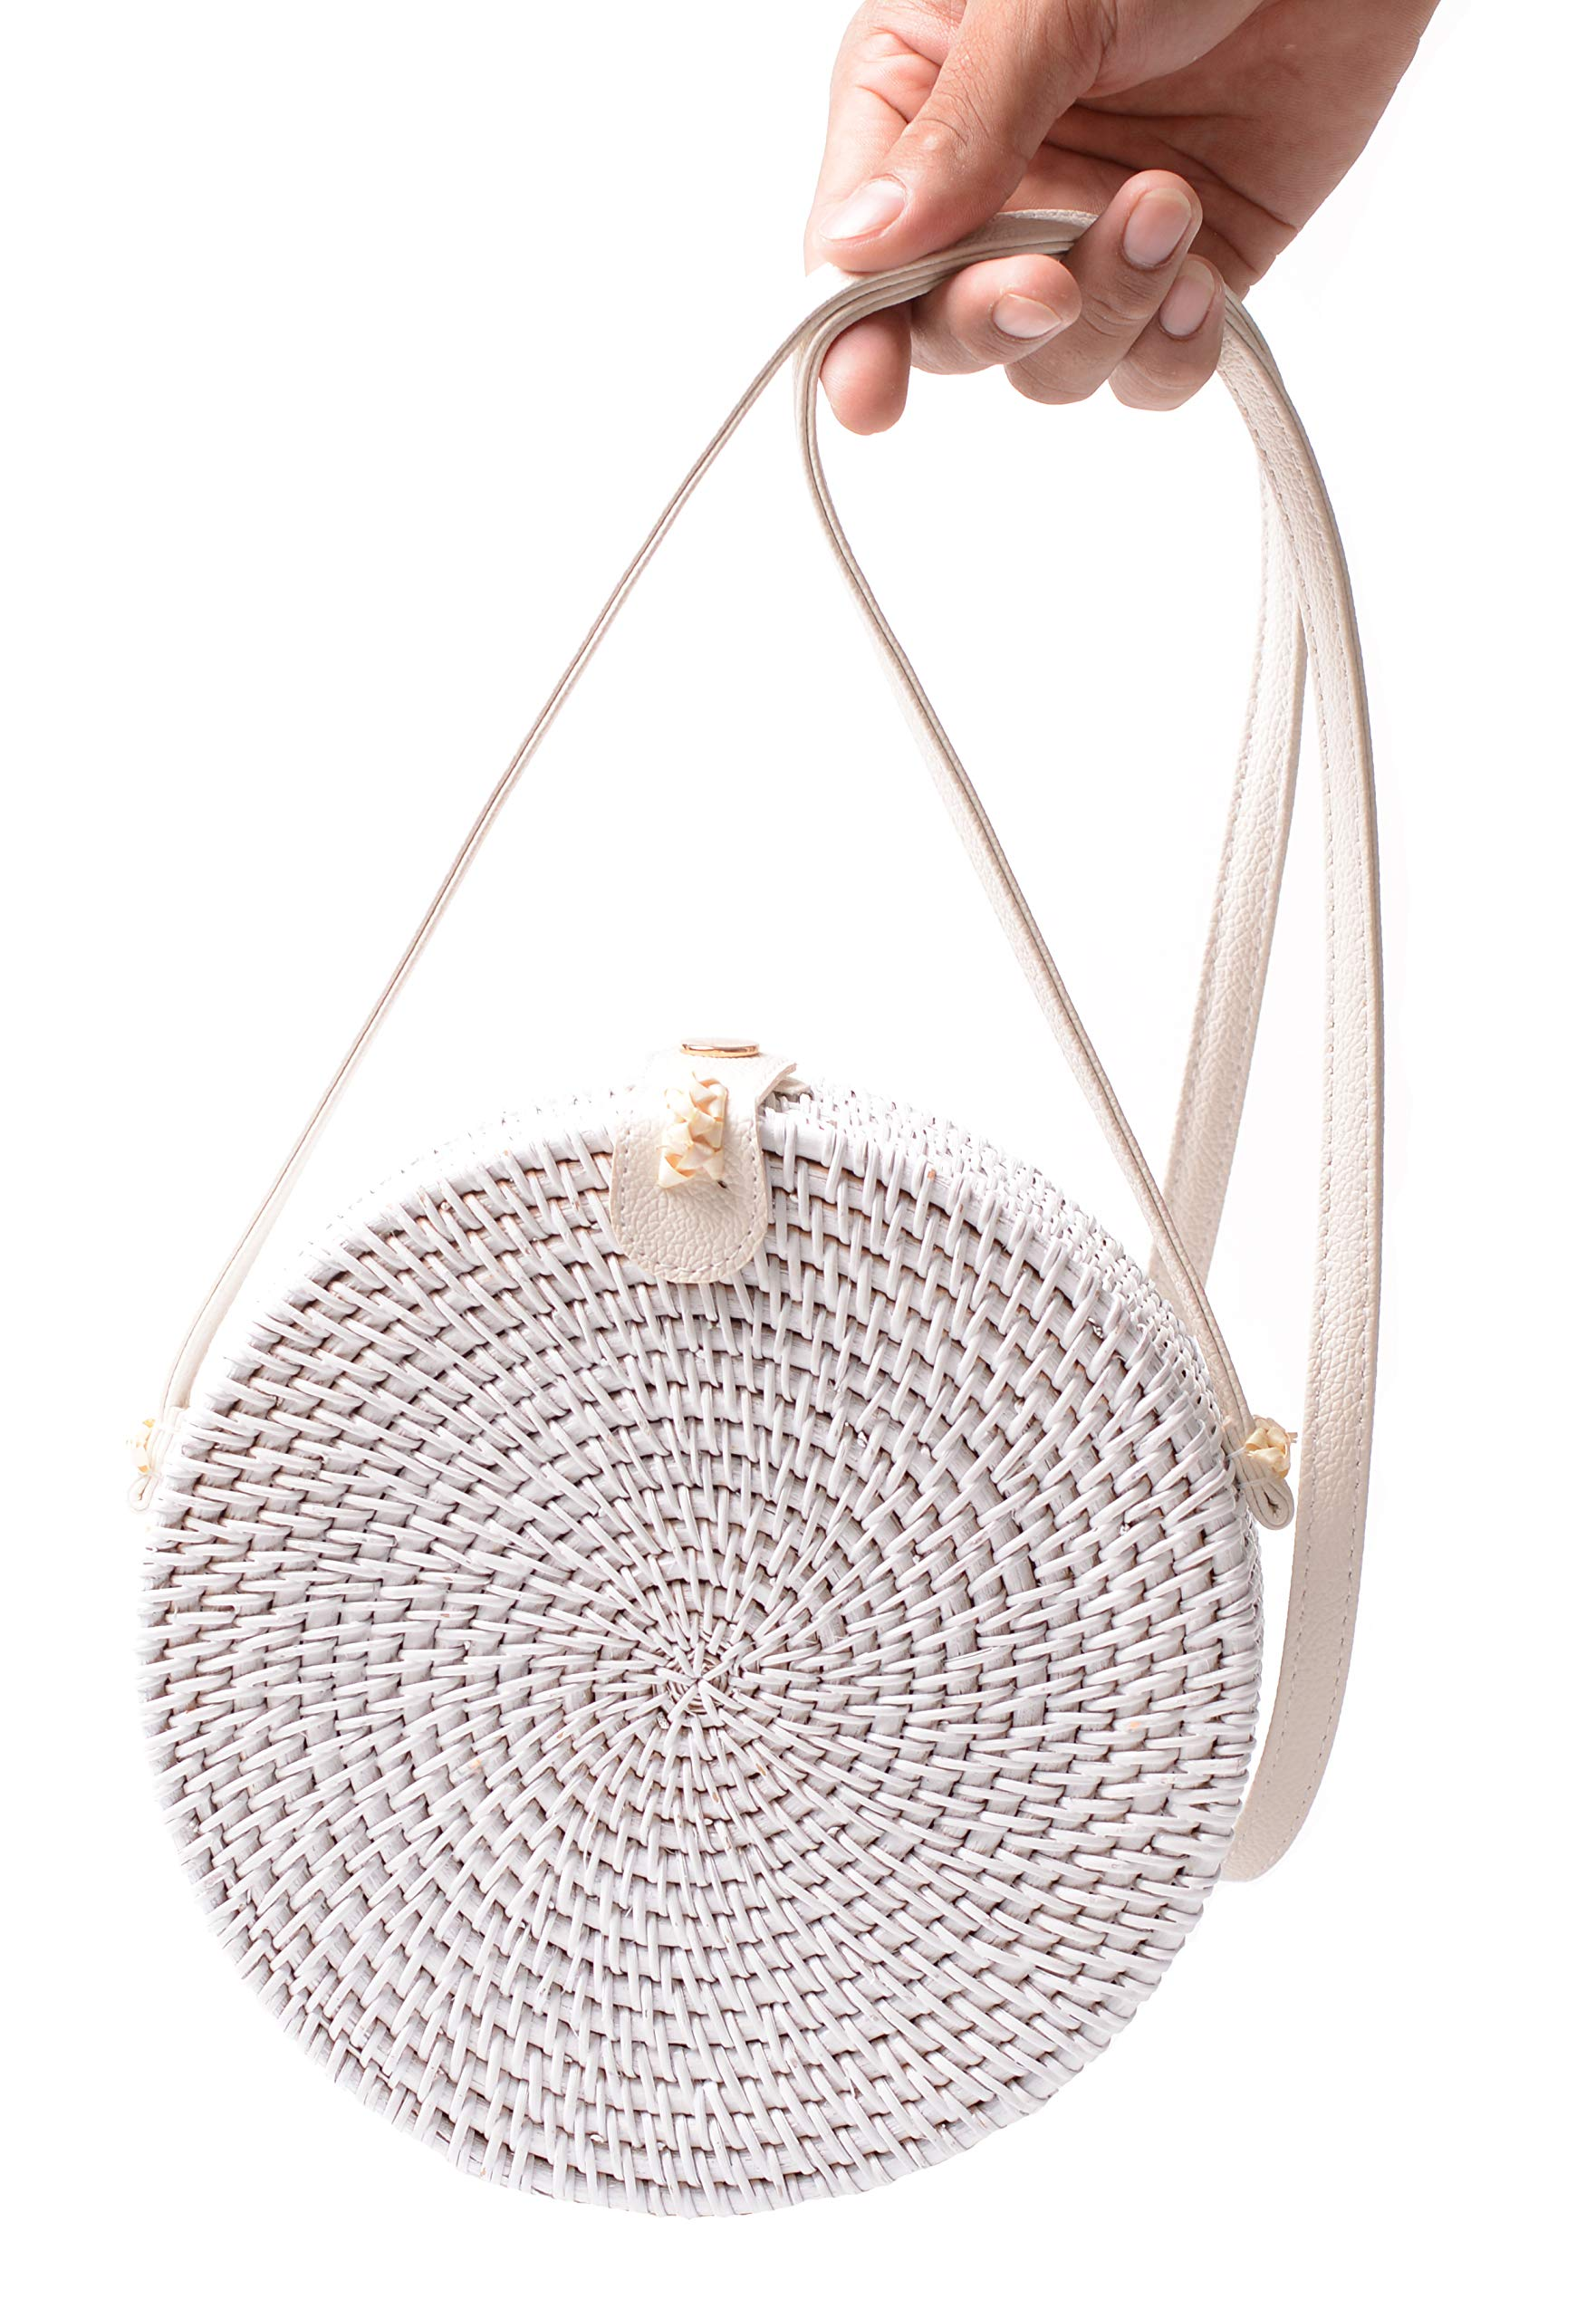 Handwoven Round Rattan Bag Shoulder Leather Straps Natural Chic Hand Gyryp (Leather buttons(white))